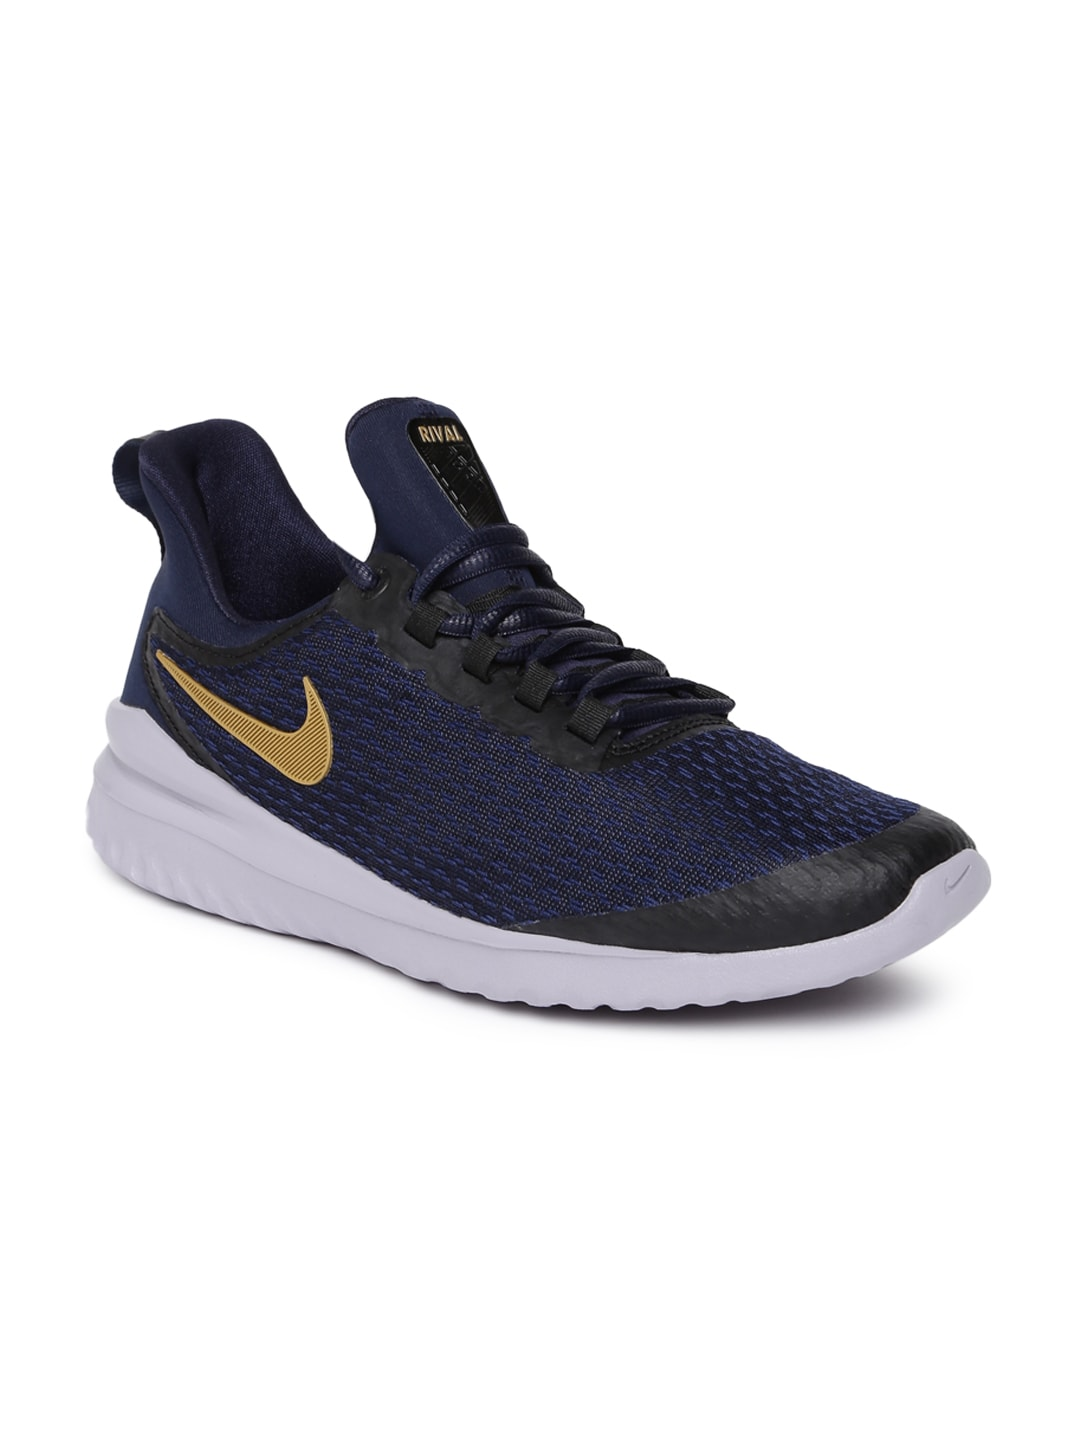 size 40 a4623 bab6a Nike Shoes Capris Sweaters - Buy Nike Shoes Capris Sweaters online in India